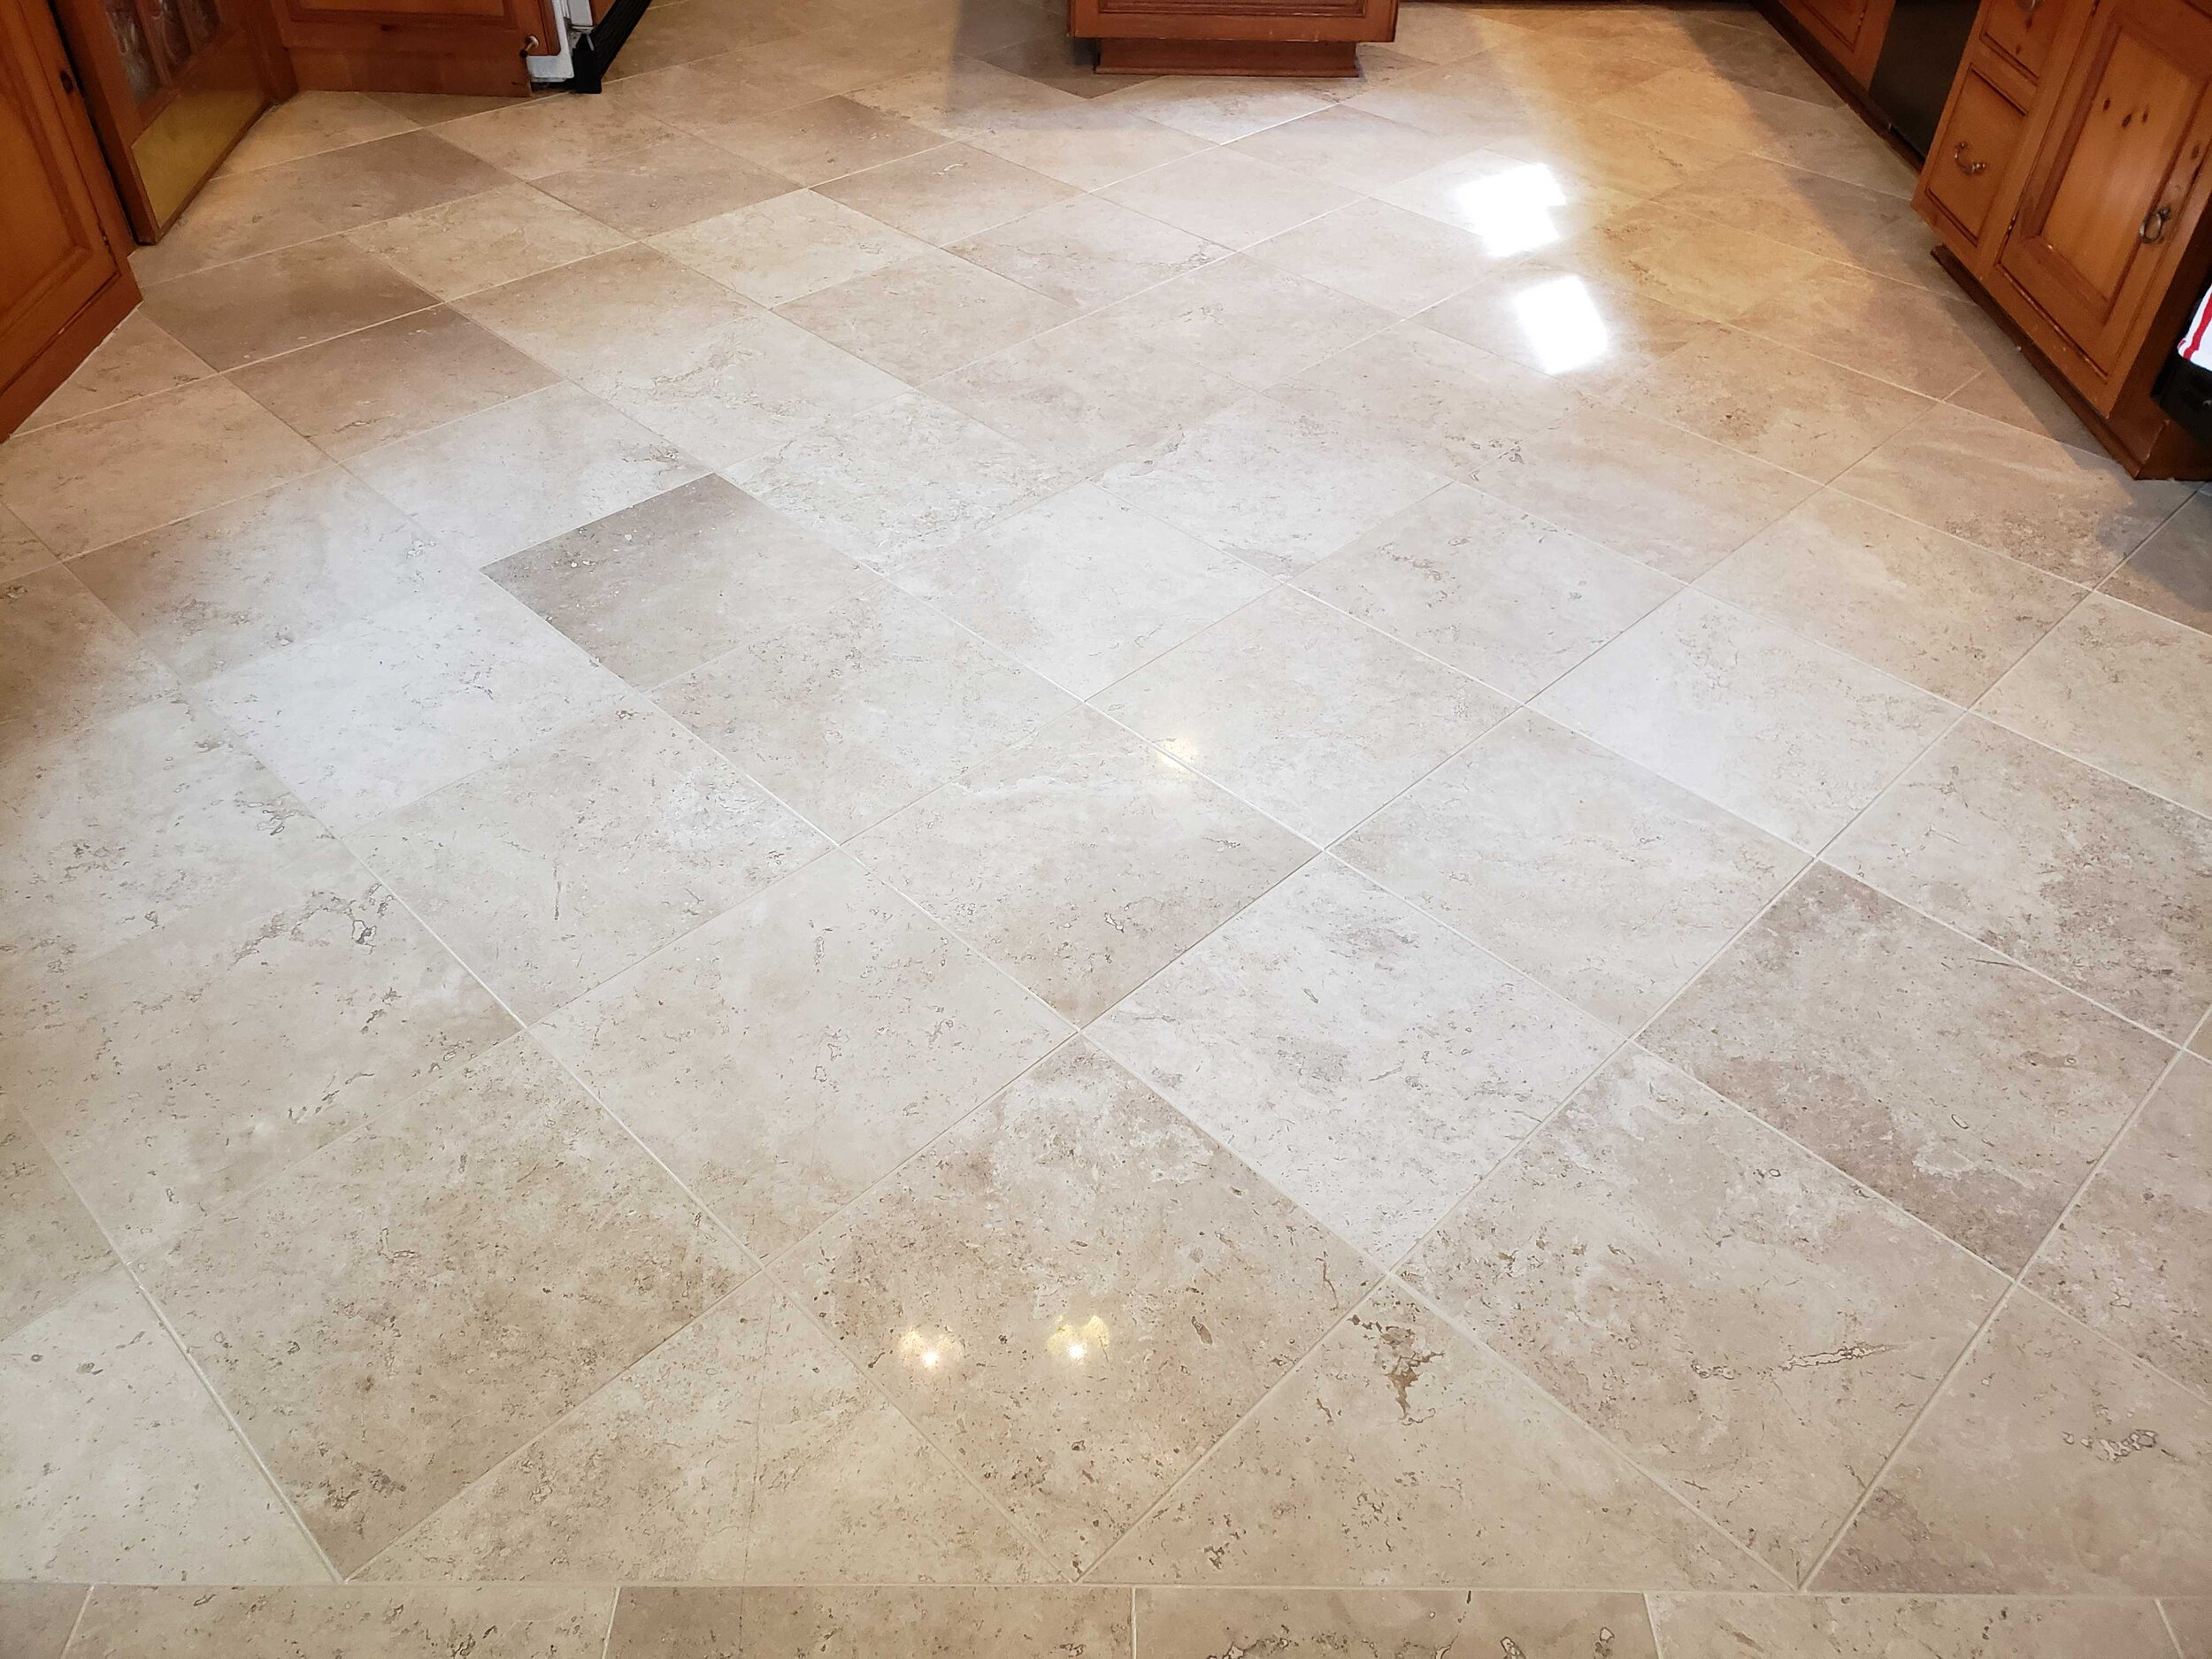 Cleaning - Our cleaners are specially designed to penetrate deep into your grout. During this process our cleaners will reopen the tiny pores in order to prepare your grout to be sealed and protected by our high quality Epoxy sealant.